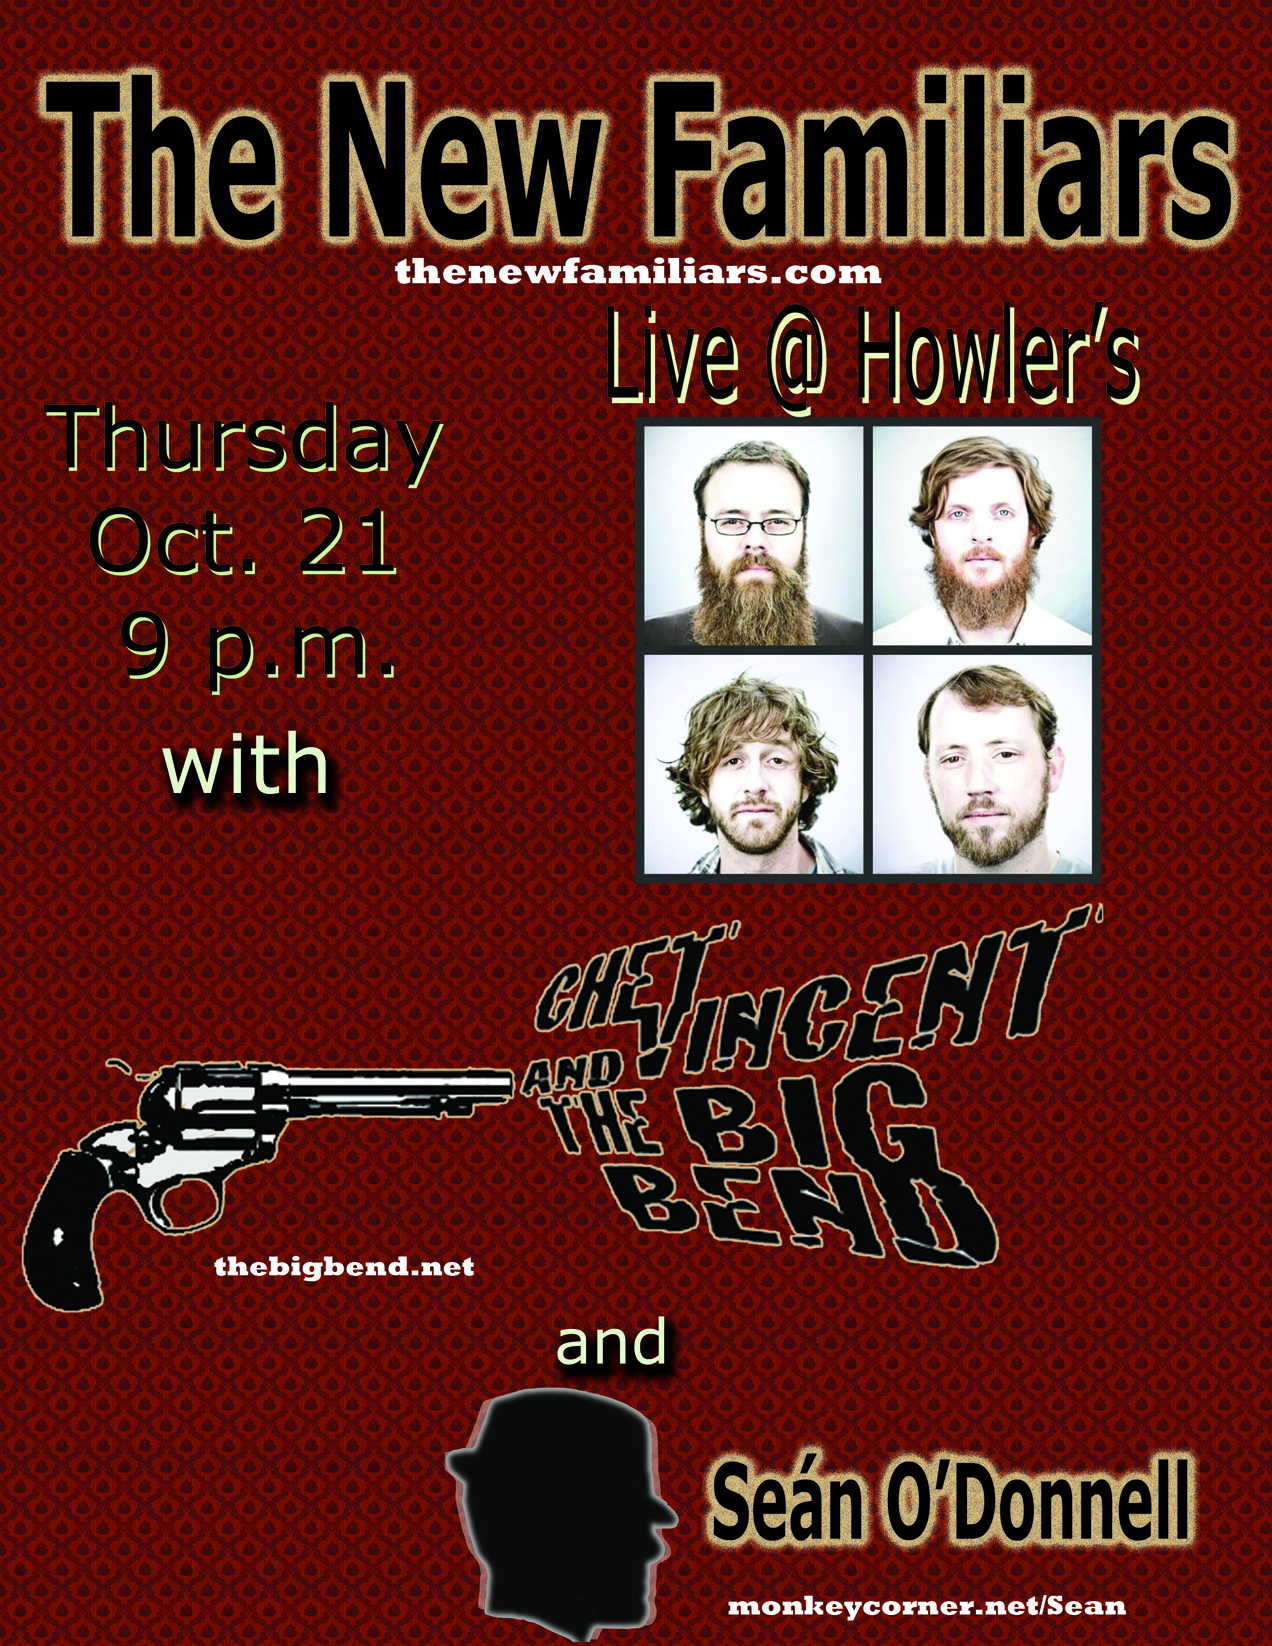 The New Familiars, Chet Vincent and the Big Bend, and Sean O'Donnell at Holwer's